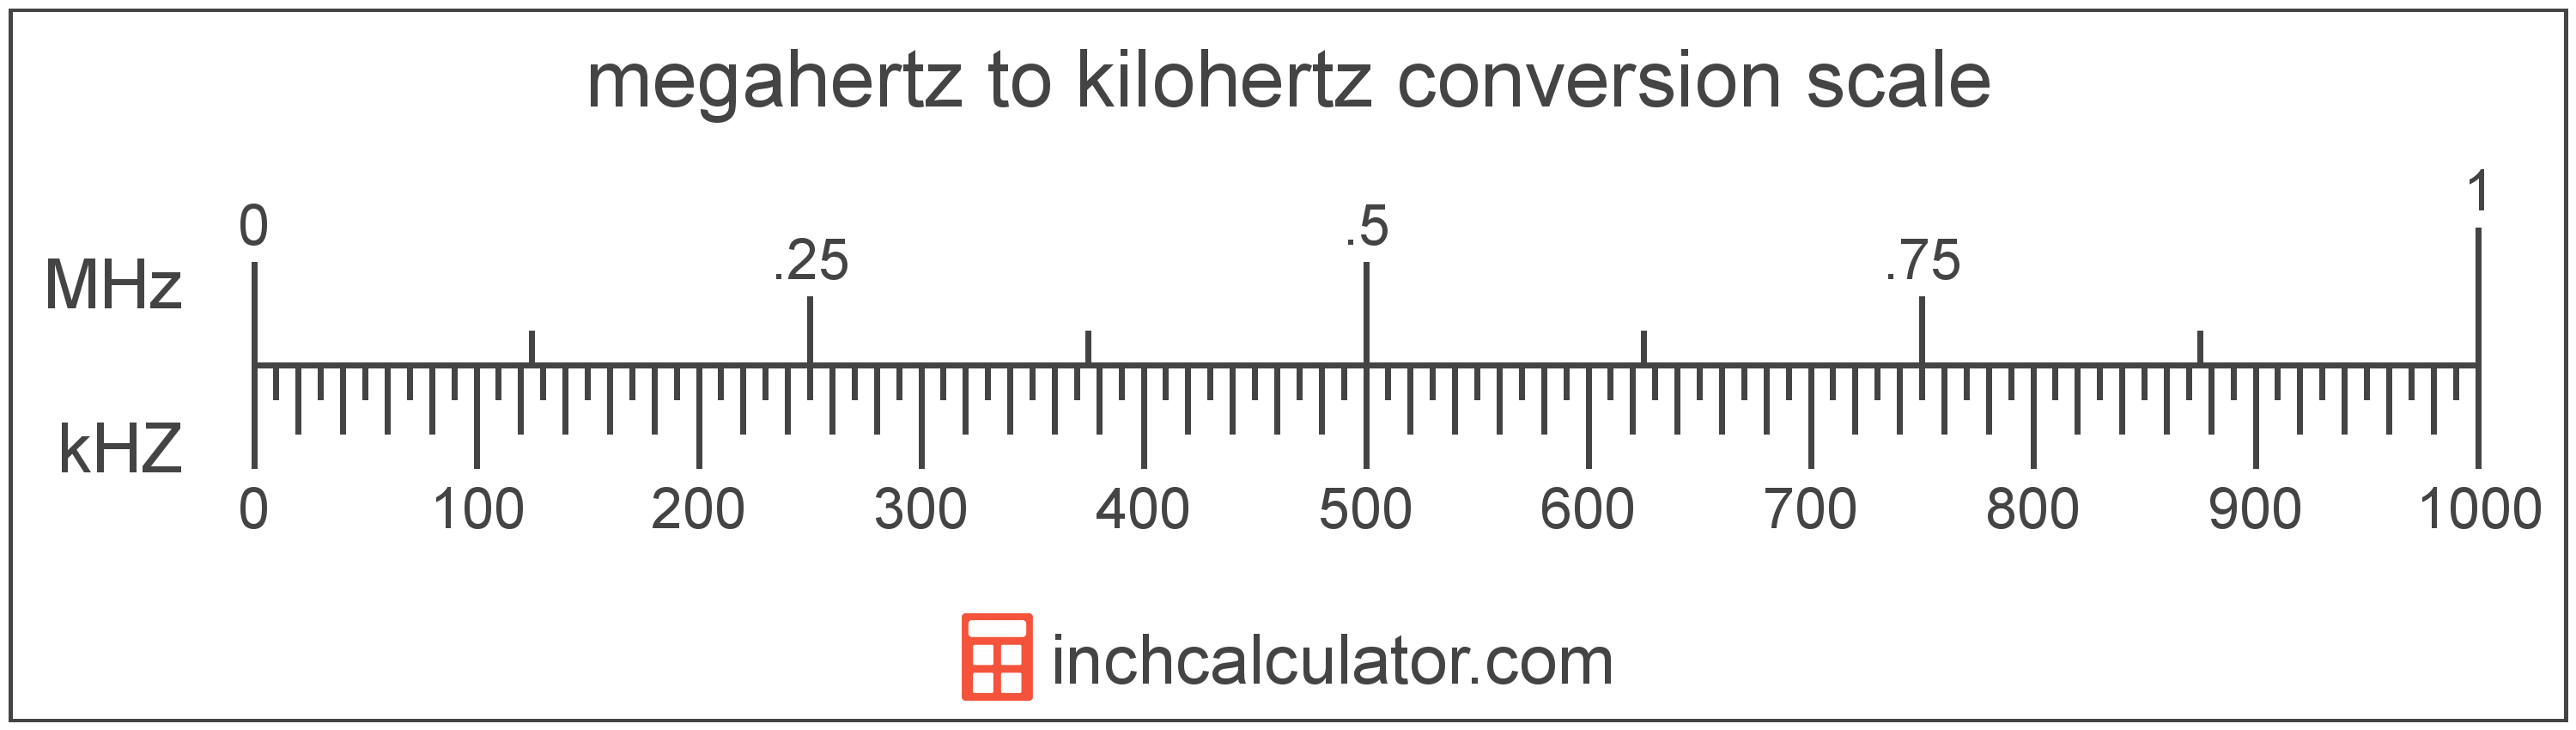 conversion scale showing kilohertz and equivalent megahertz frequency values